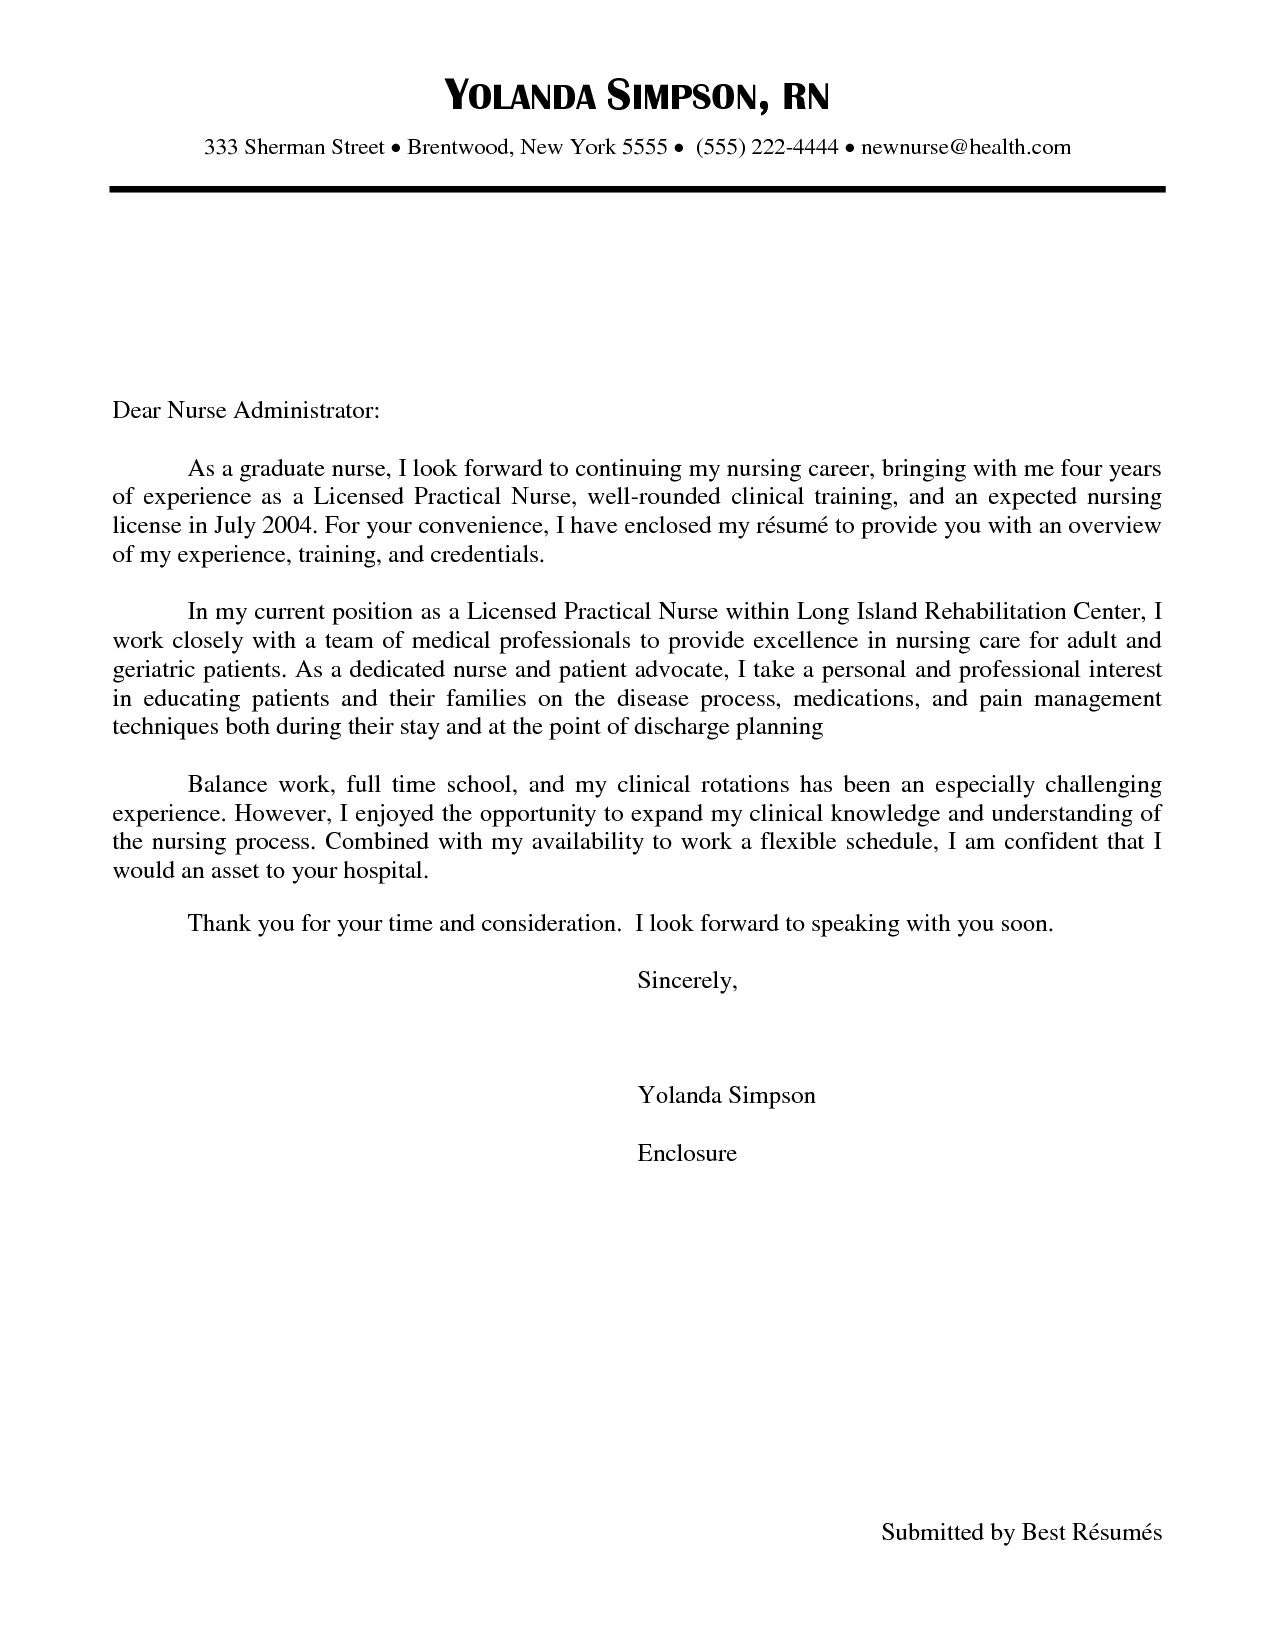 Superb New Grad Nurse Cover Letter Example | Cover Letter Functional Style 2